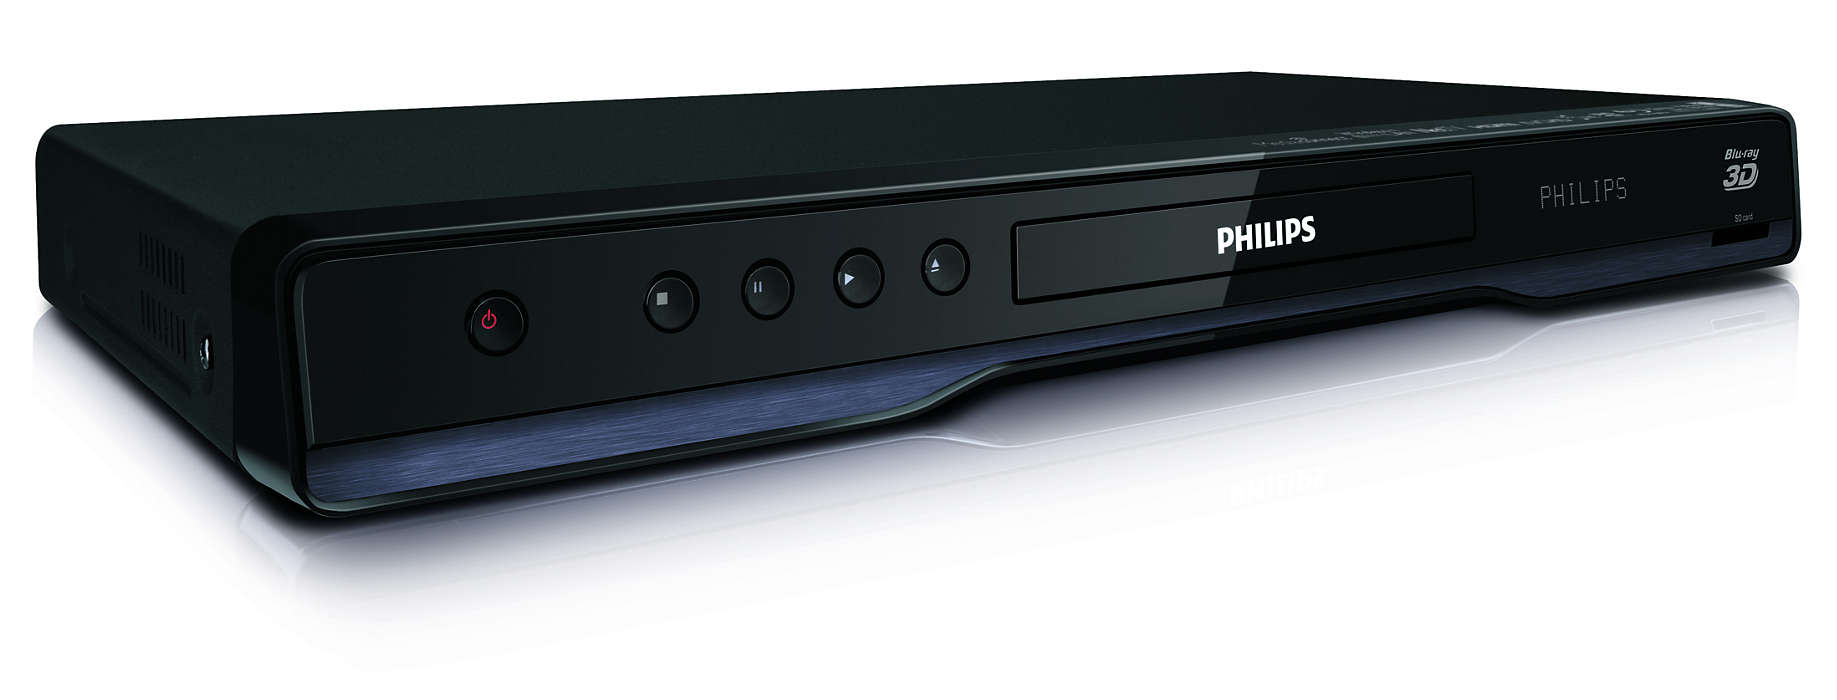 Limitless Possibilities with wireless 3D Blu-ray